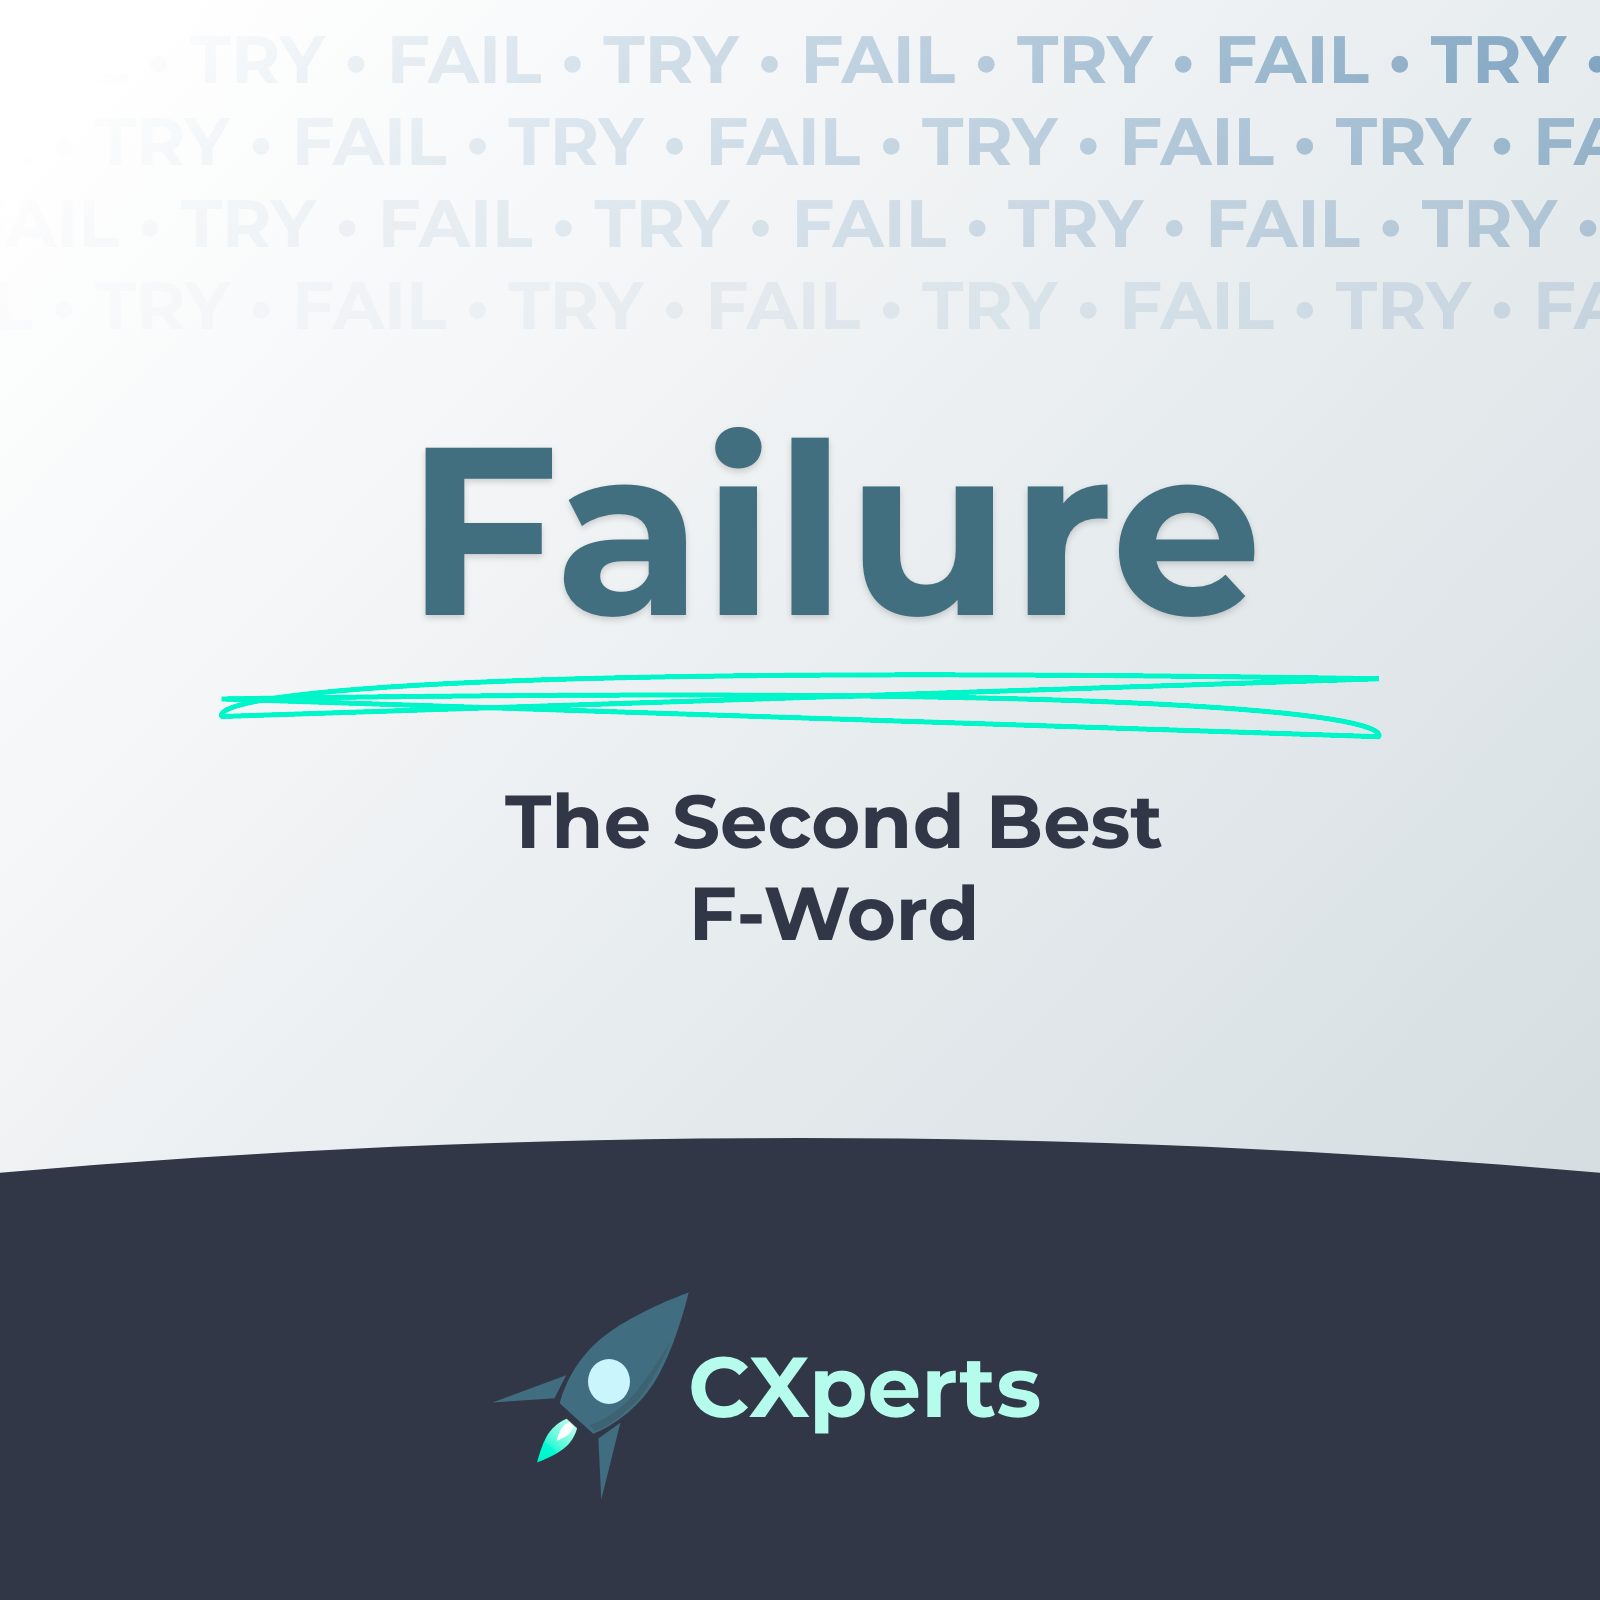 Failure: The Second Best F-Word in User Experience